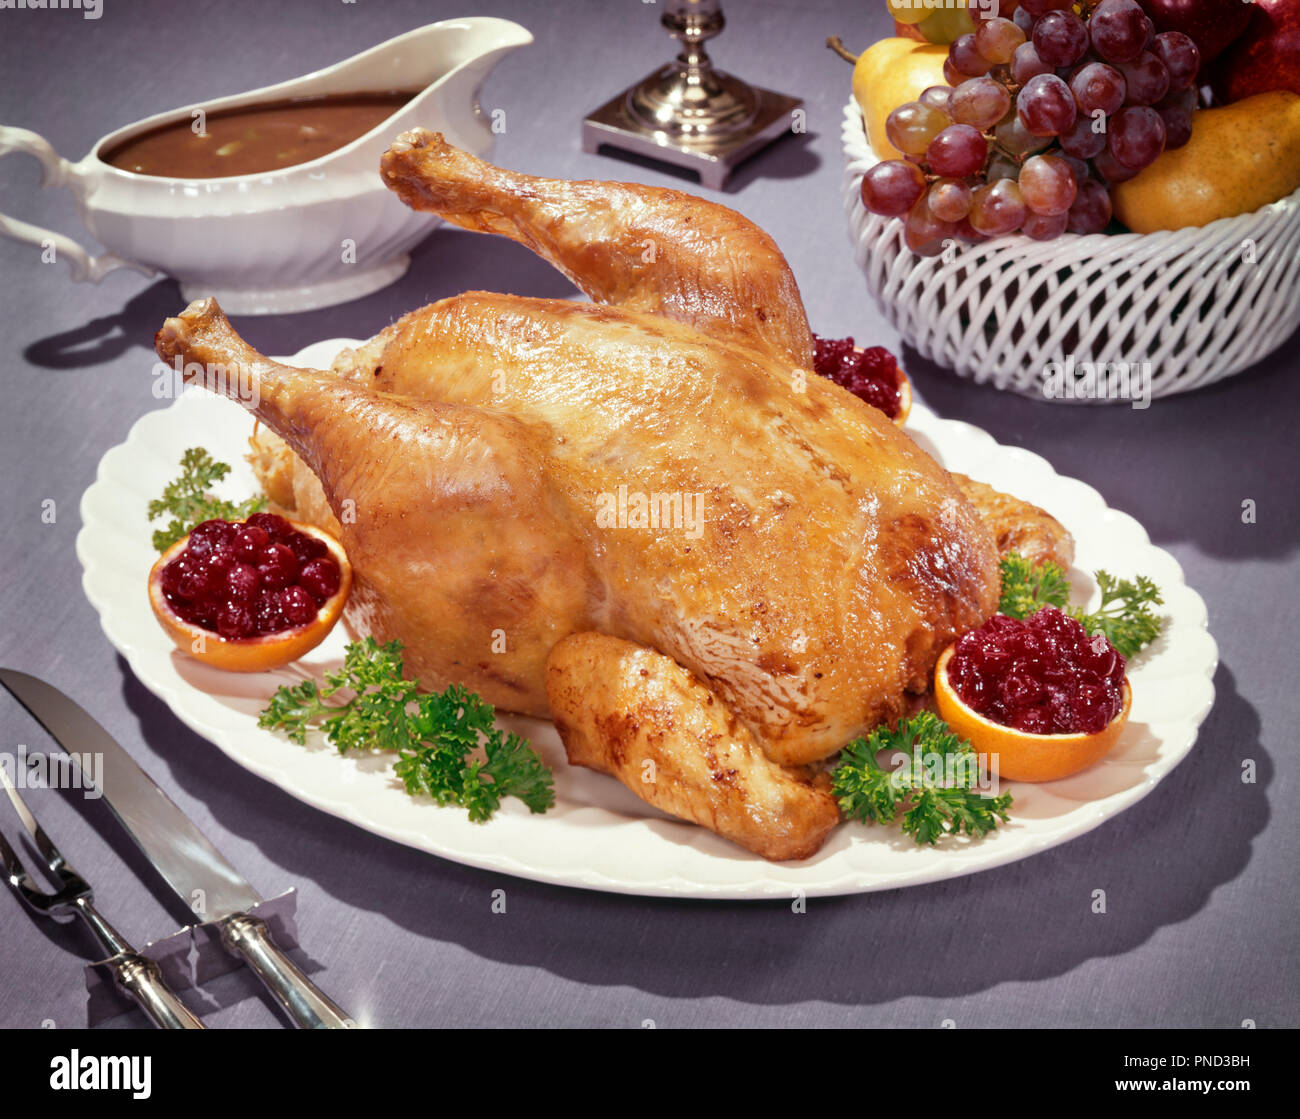 1950s 1960s ROAST CAPON ON PLATTER WITH GRAVY BOAT CRANBERRY